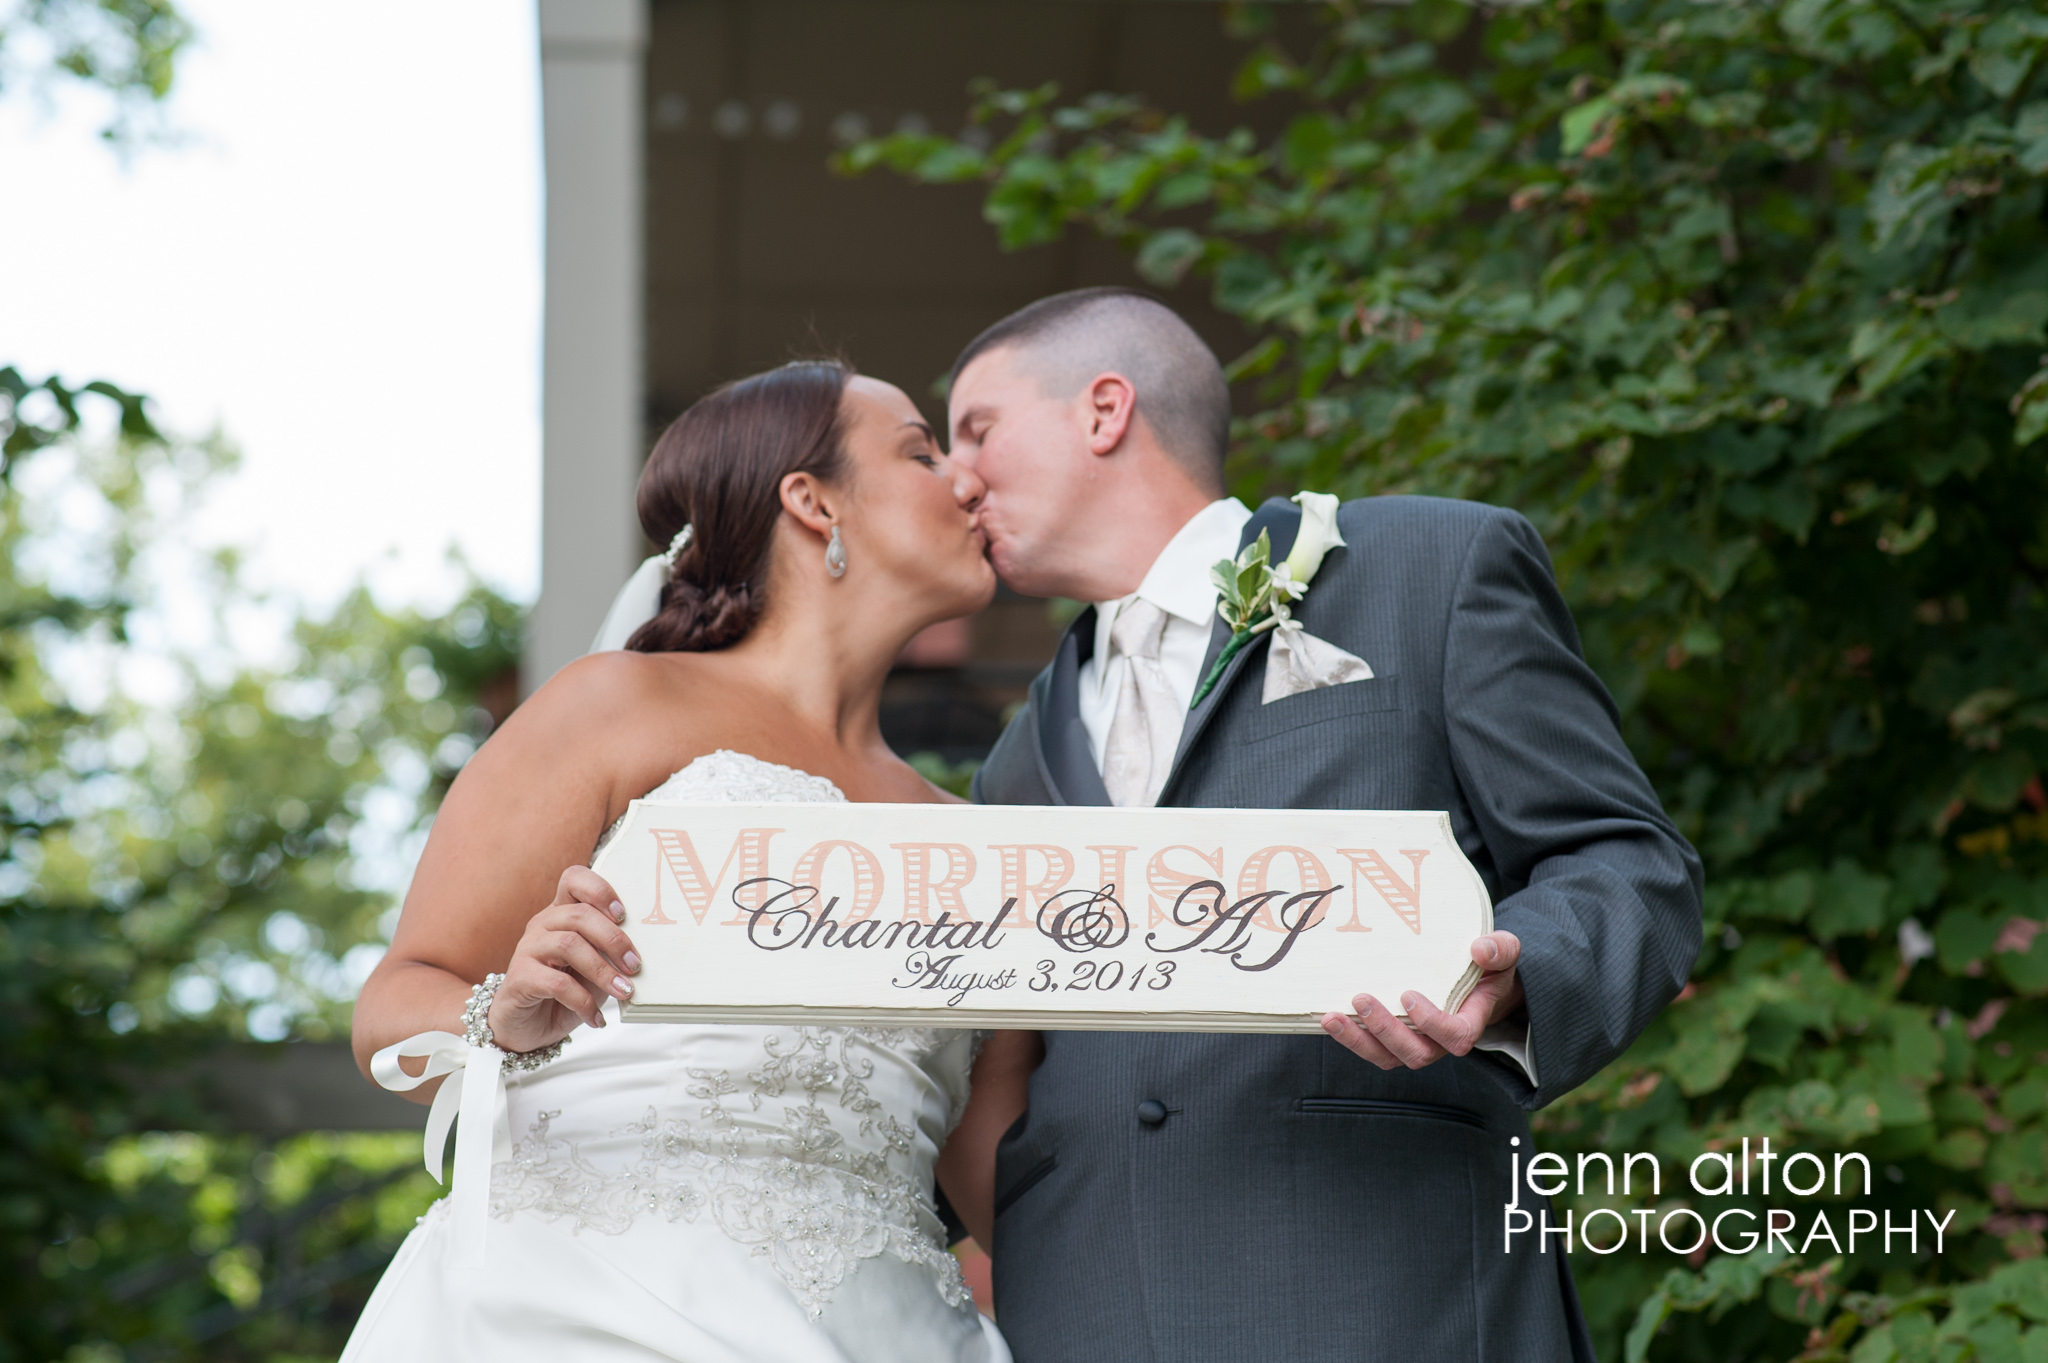 Bride and groom with custom sign portrait